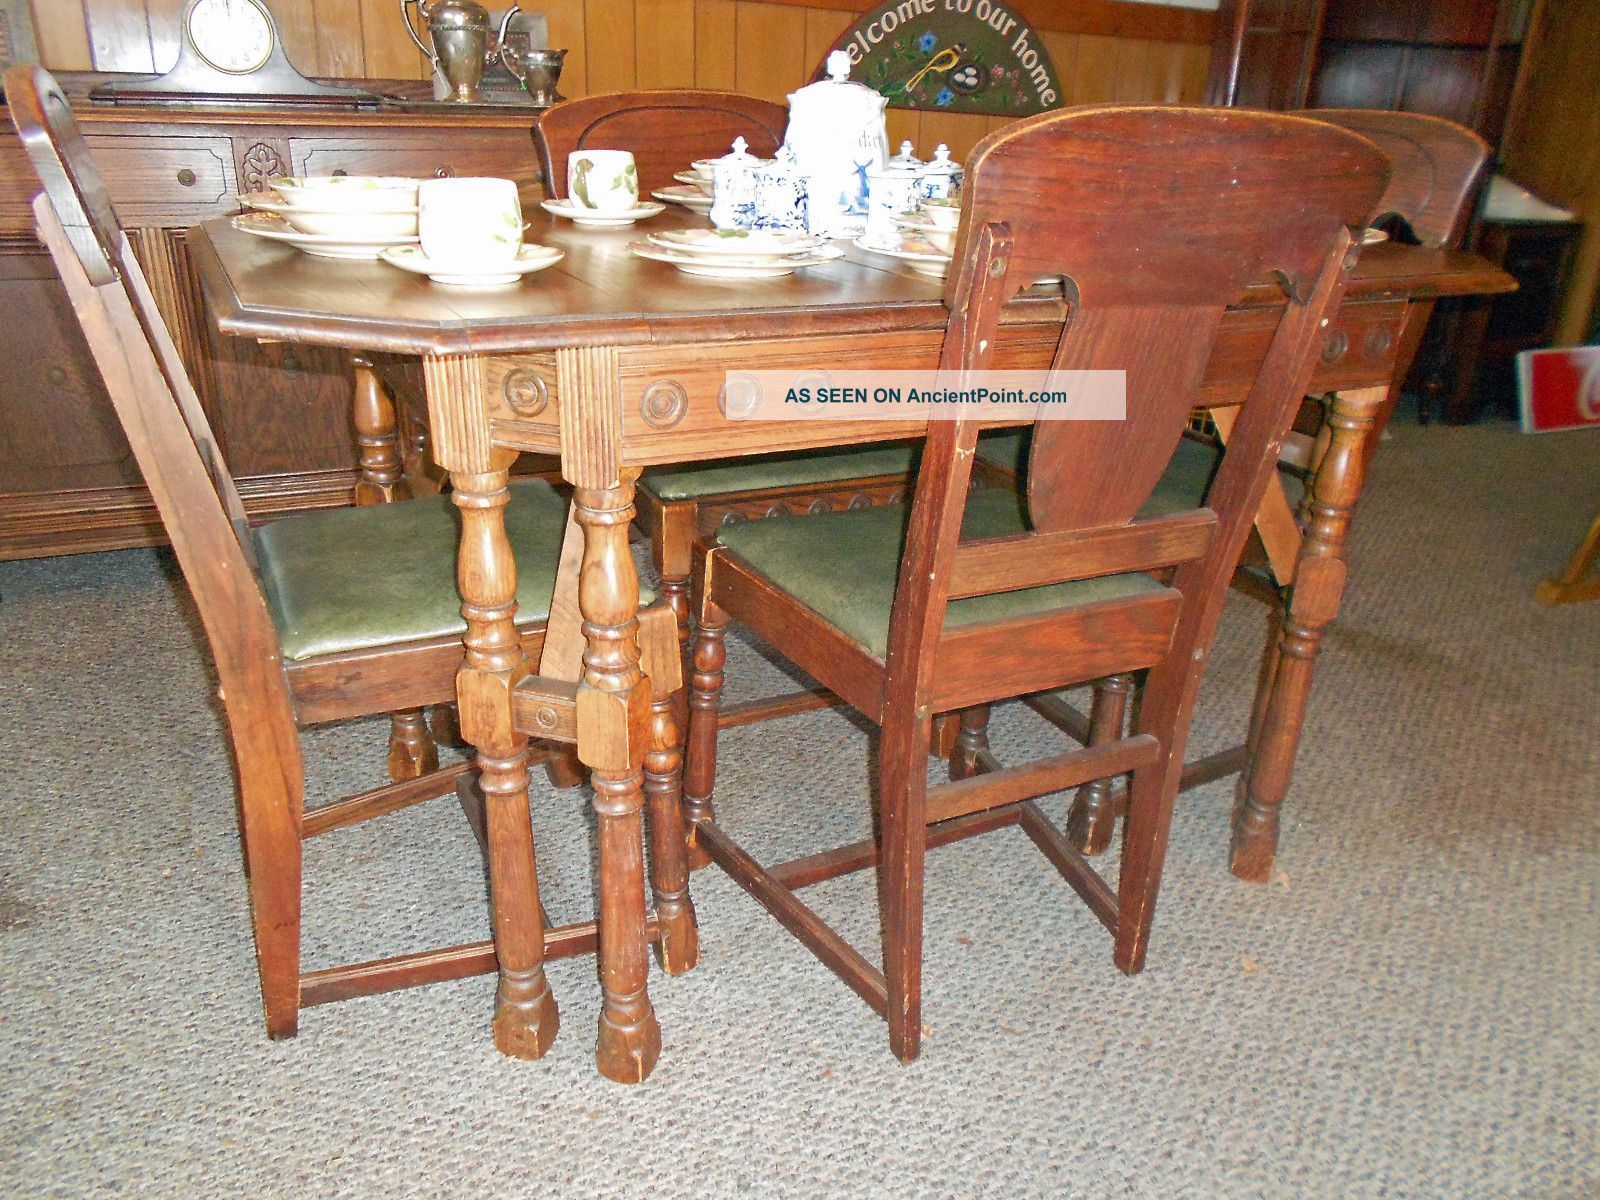 1936 Antique Oak Sideboard Dining Table W 2 Leaves And 6 Chairs